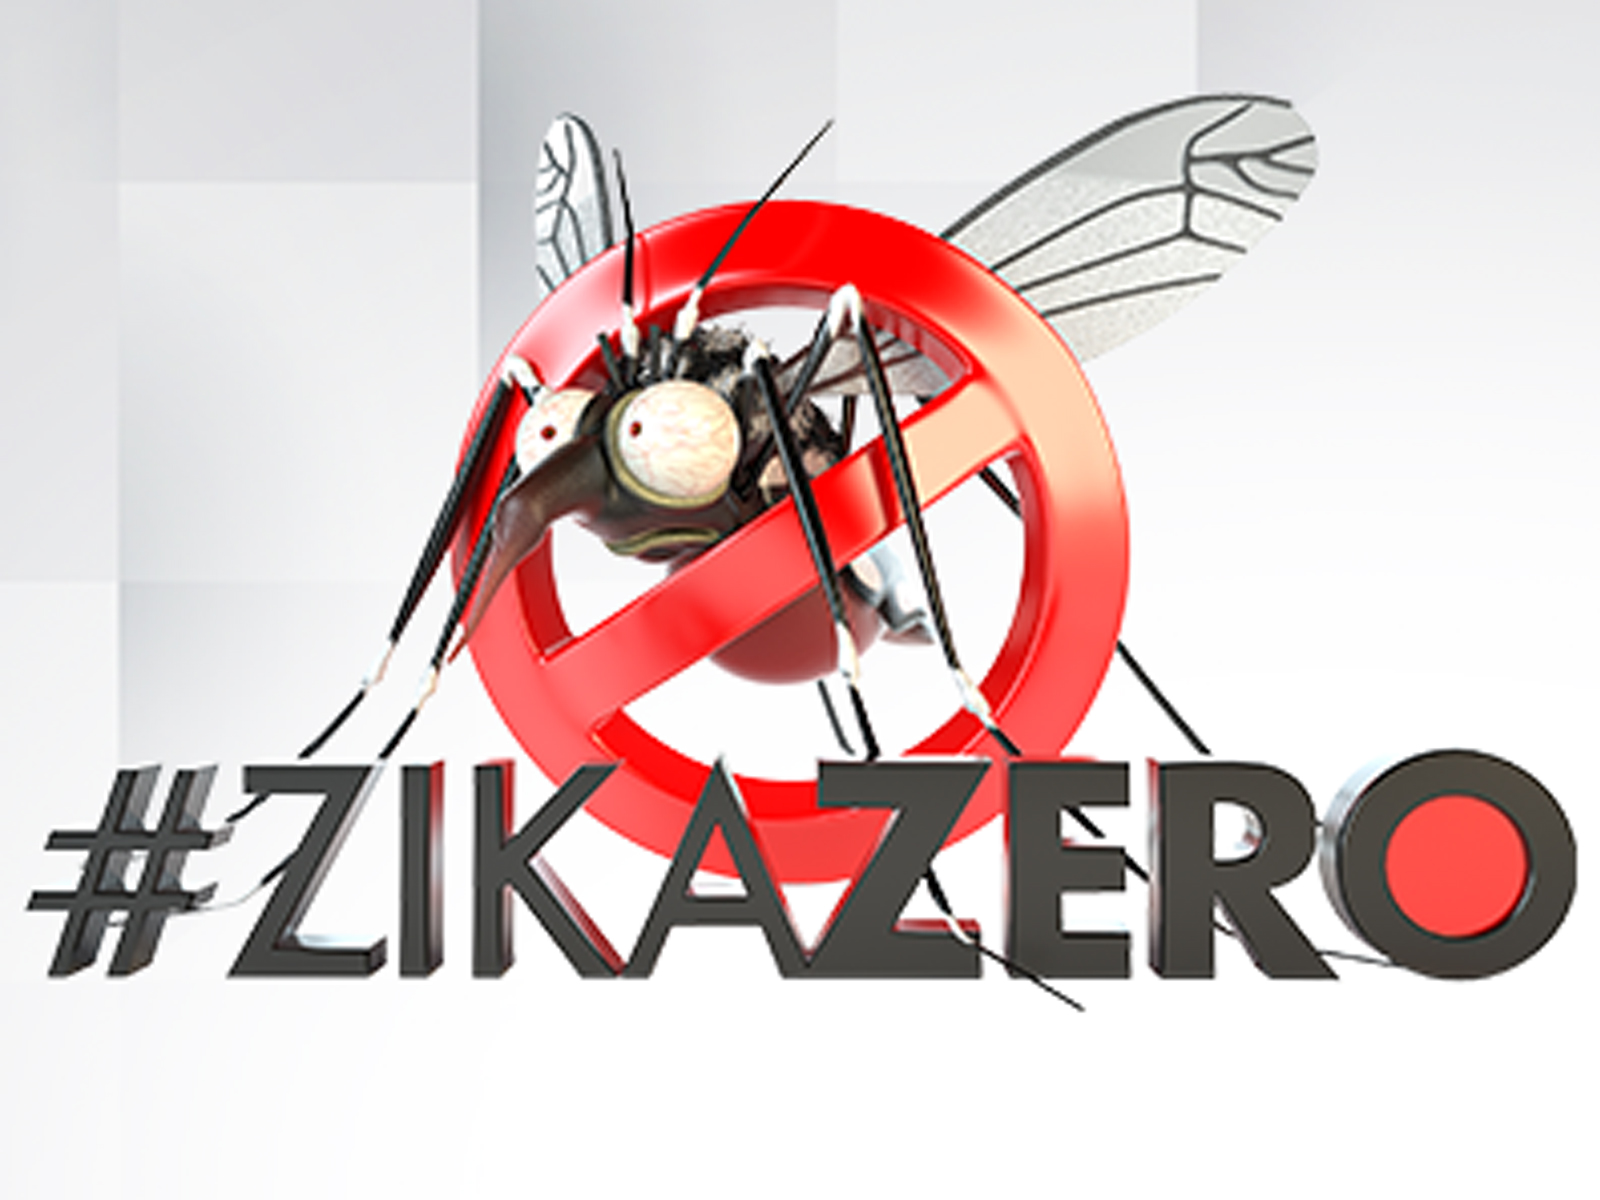 o-medo-do-zika-virus